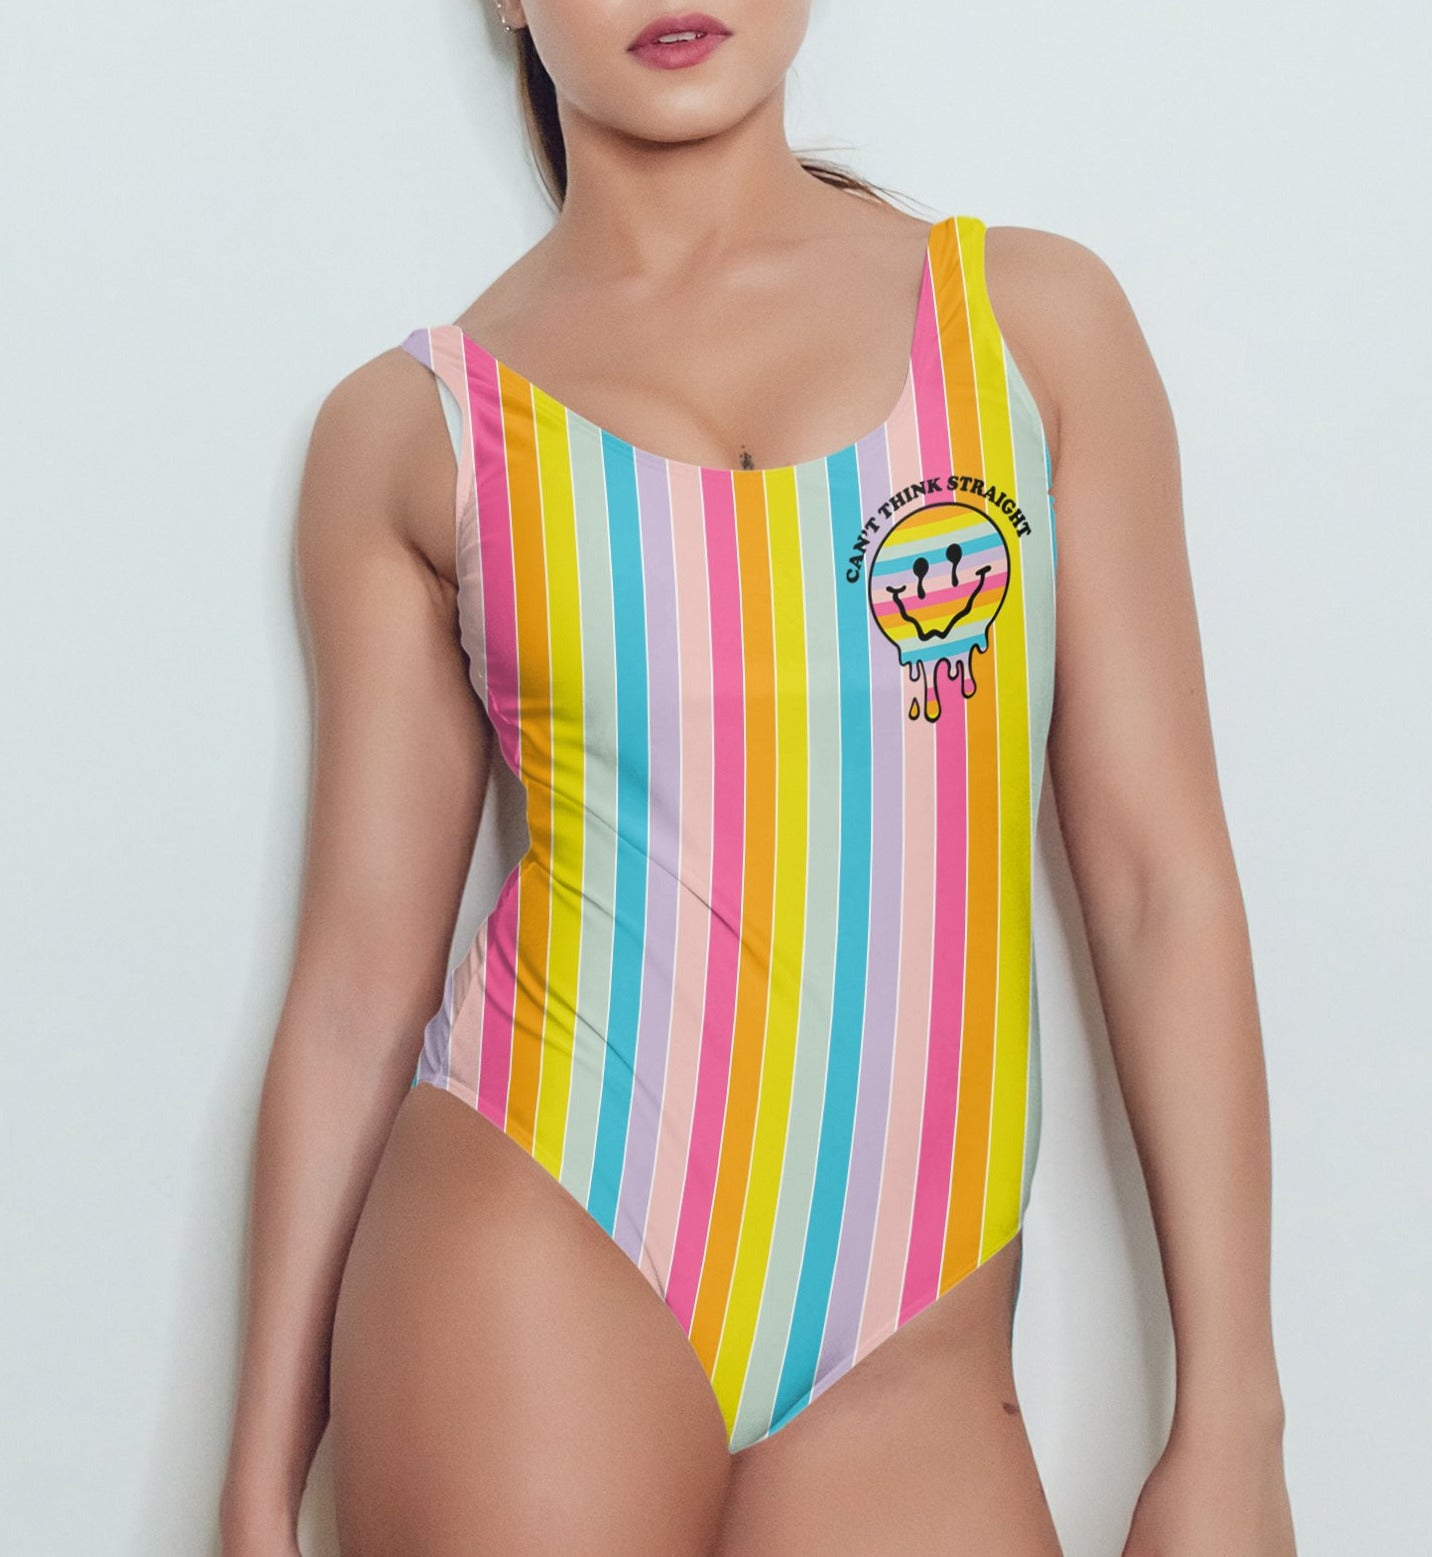 Rainbow stripes swimsuit with a melted smiley face saying can't think straight - HighCiti